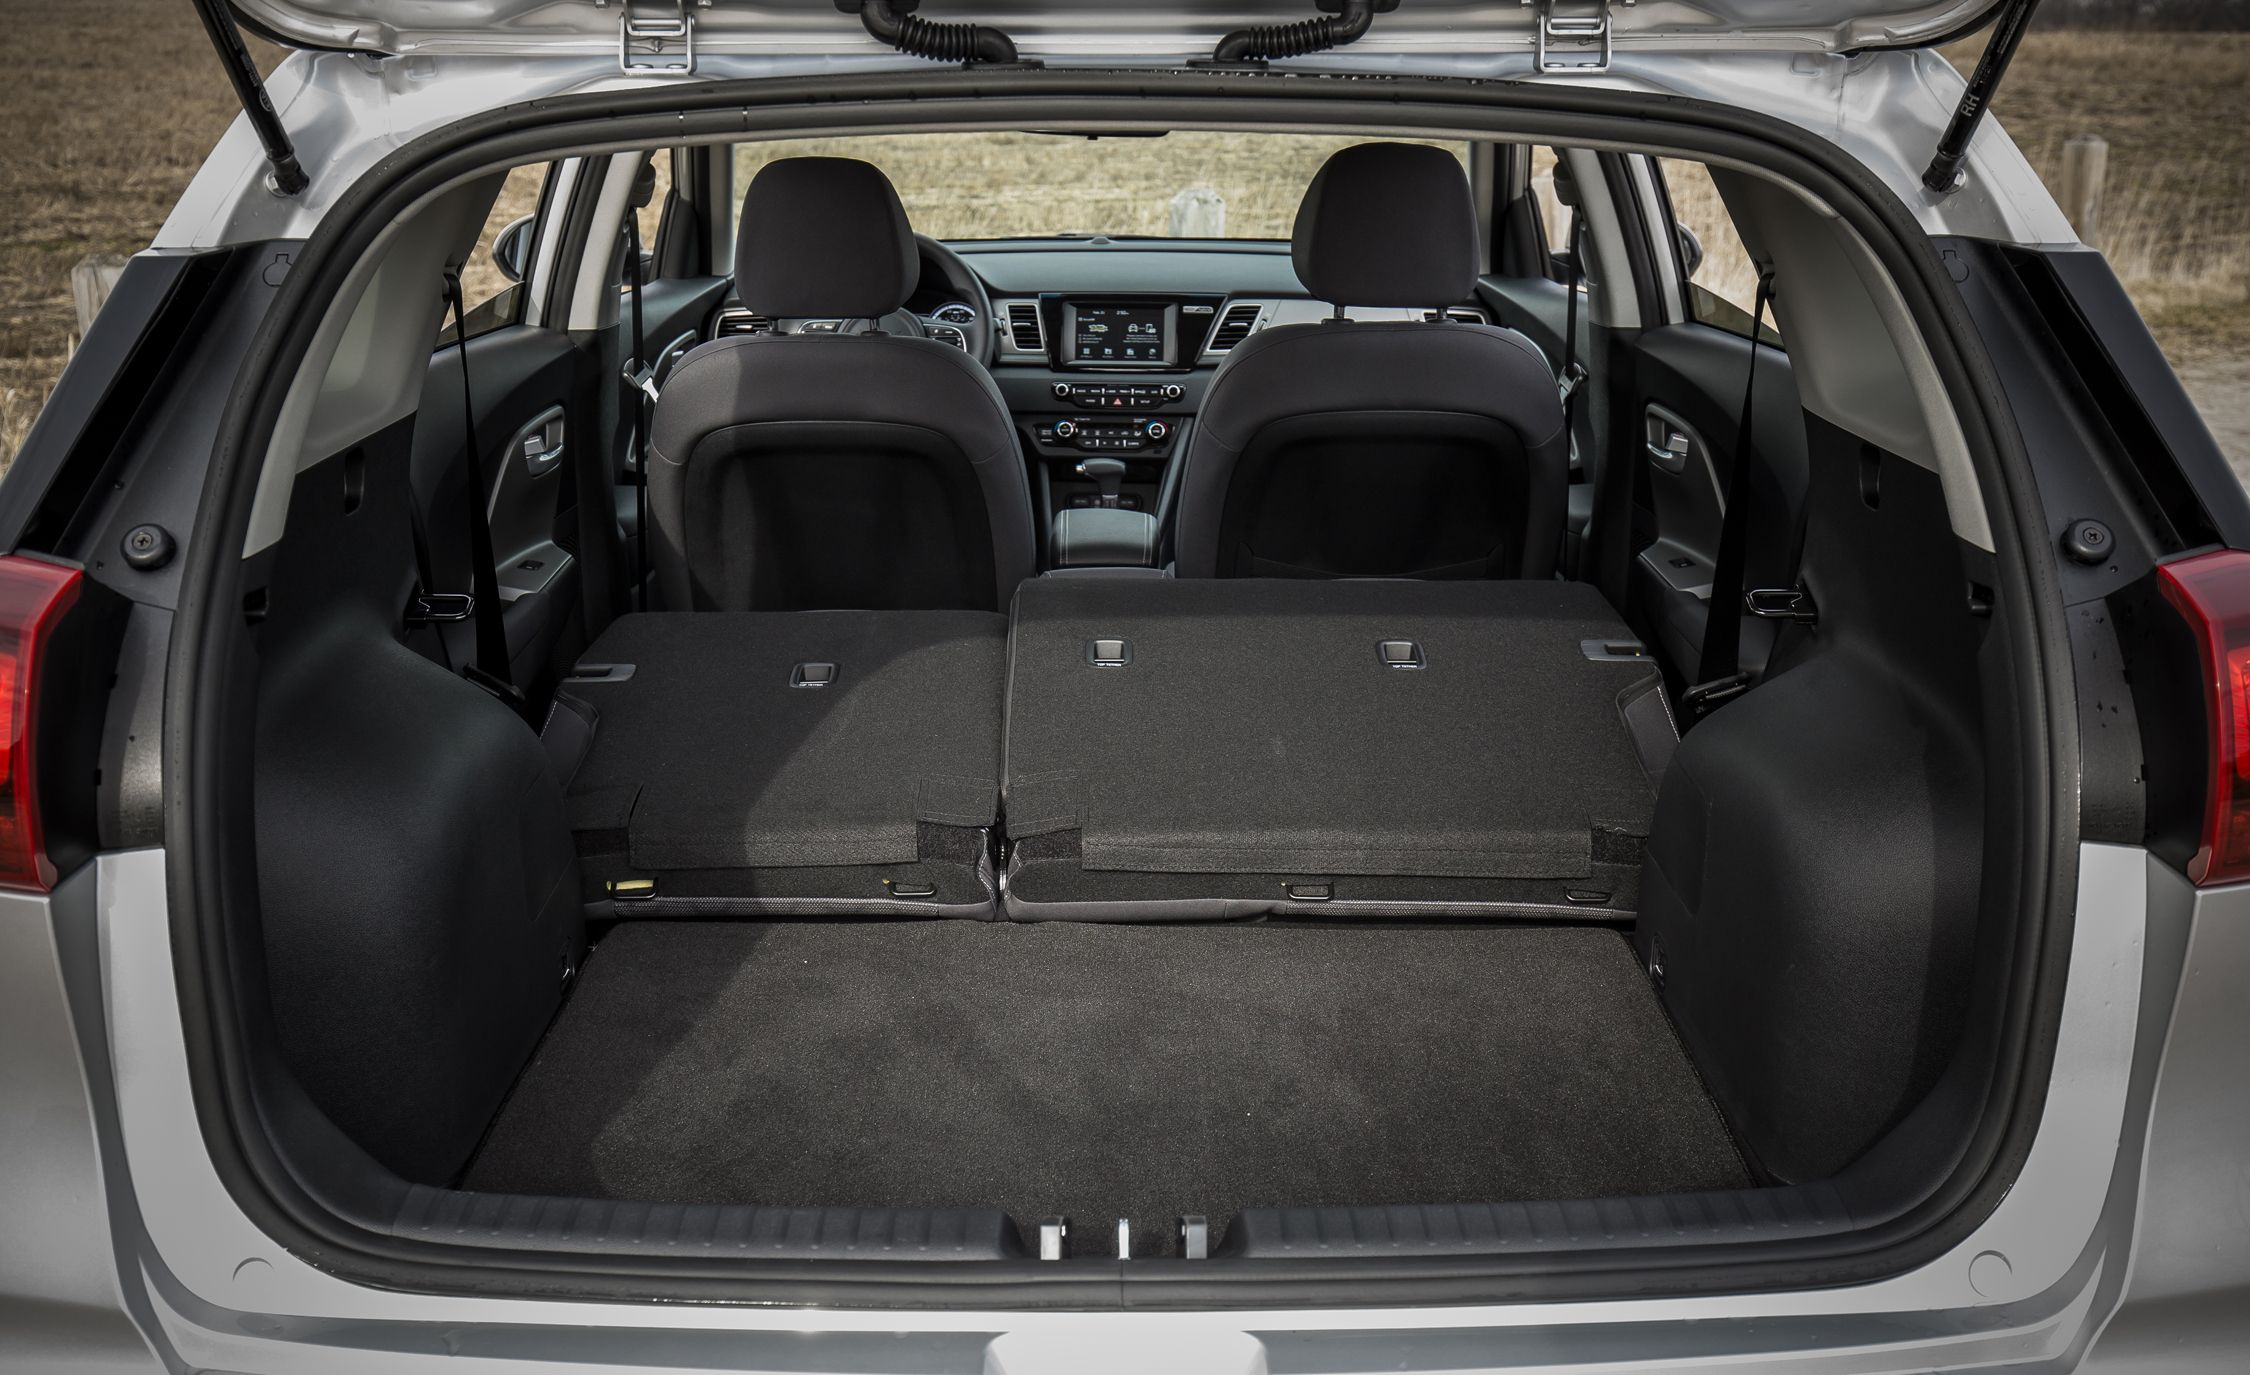 2017 Kia Niro Cargo Space And Storage Review Car And